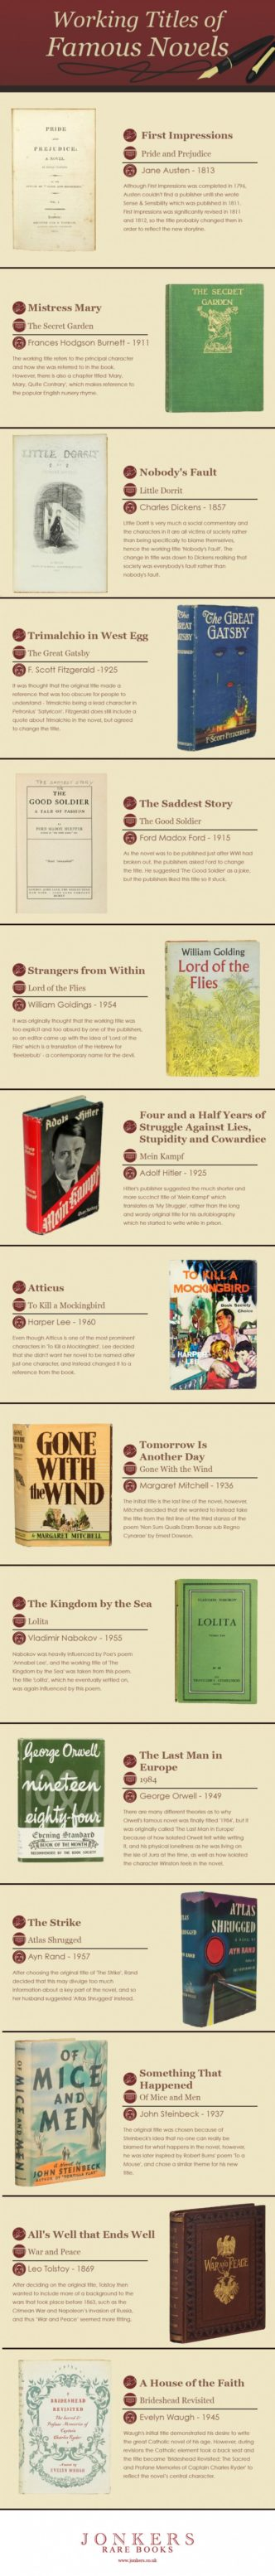 Working titles of famous novels #infographic